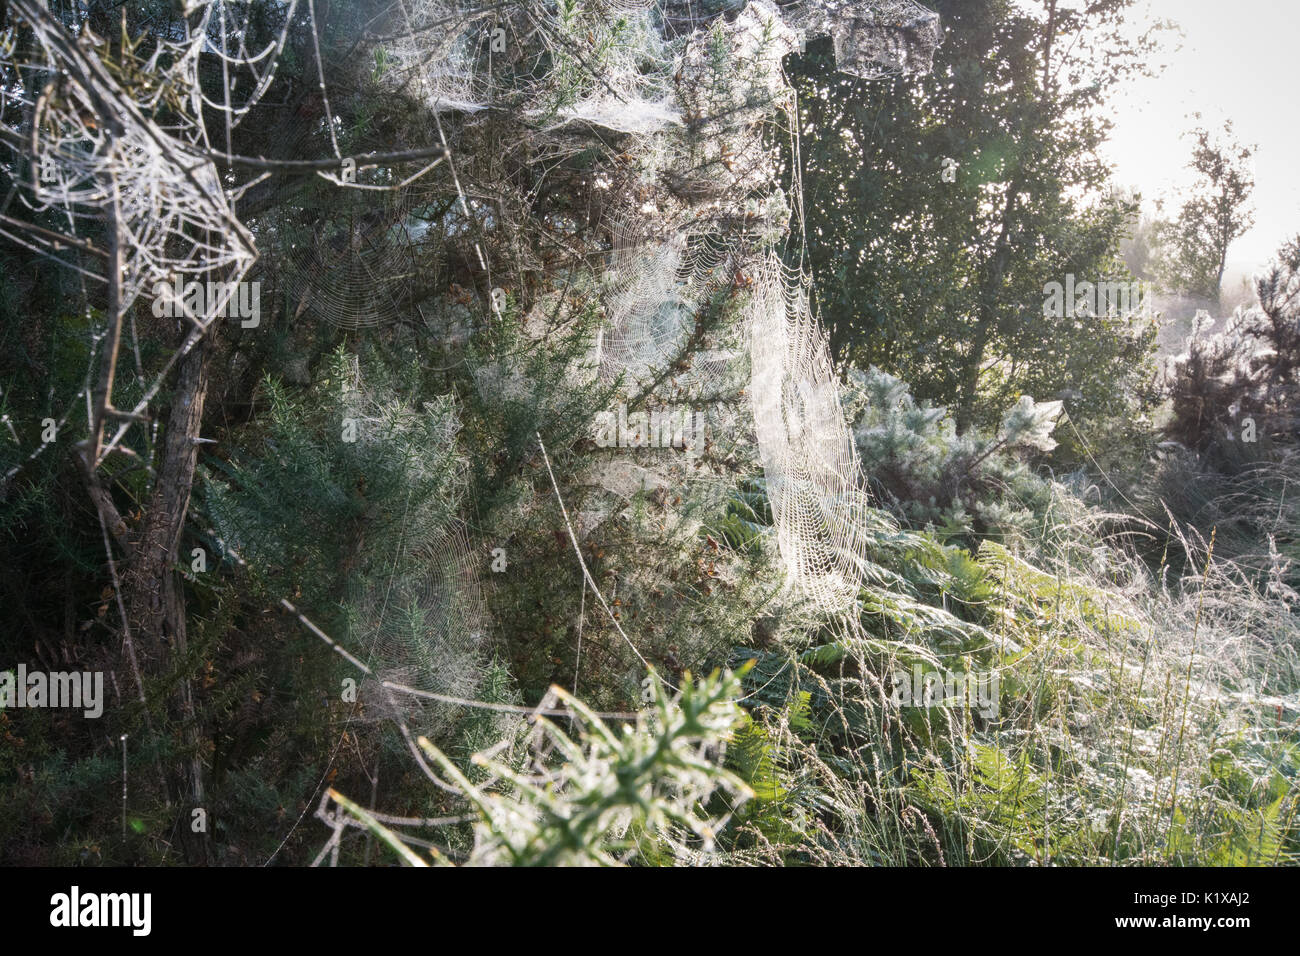 Spider's webs on gorse bushes on a frosty morning at Thursley Common National Nature Reserve in Surrey, UK - Stock Image